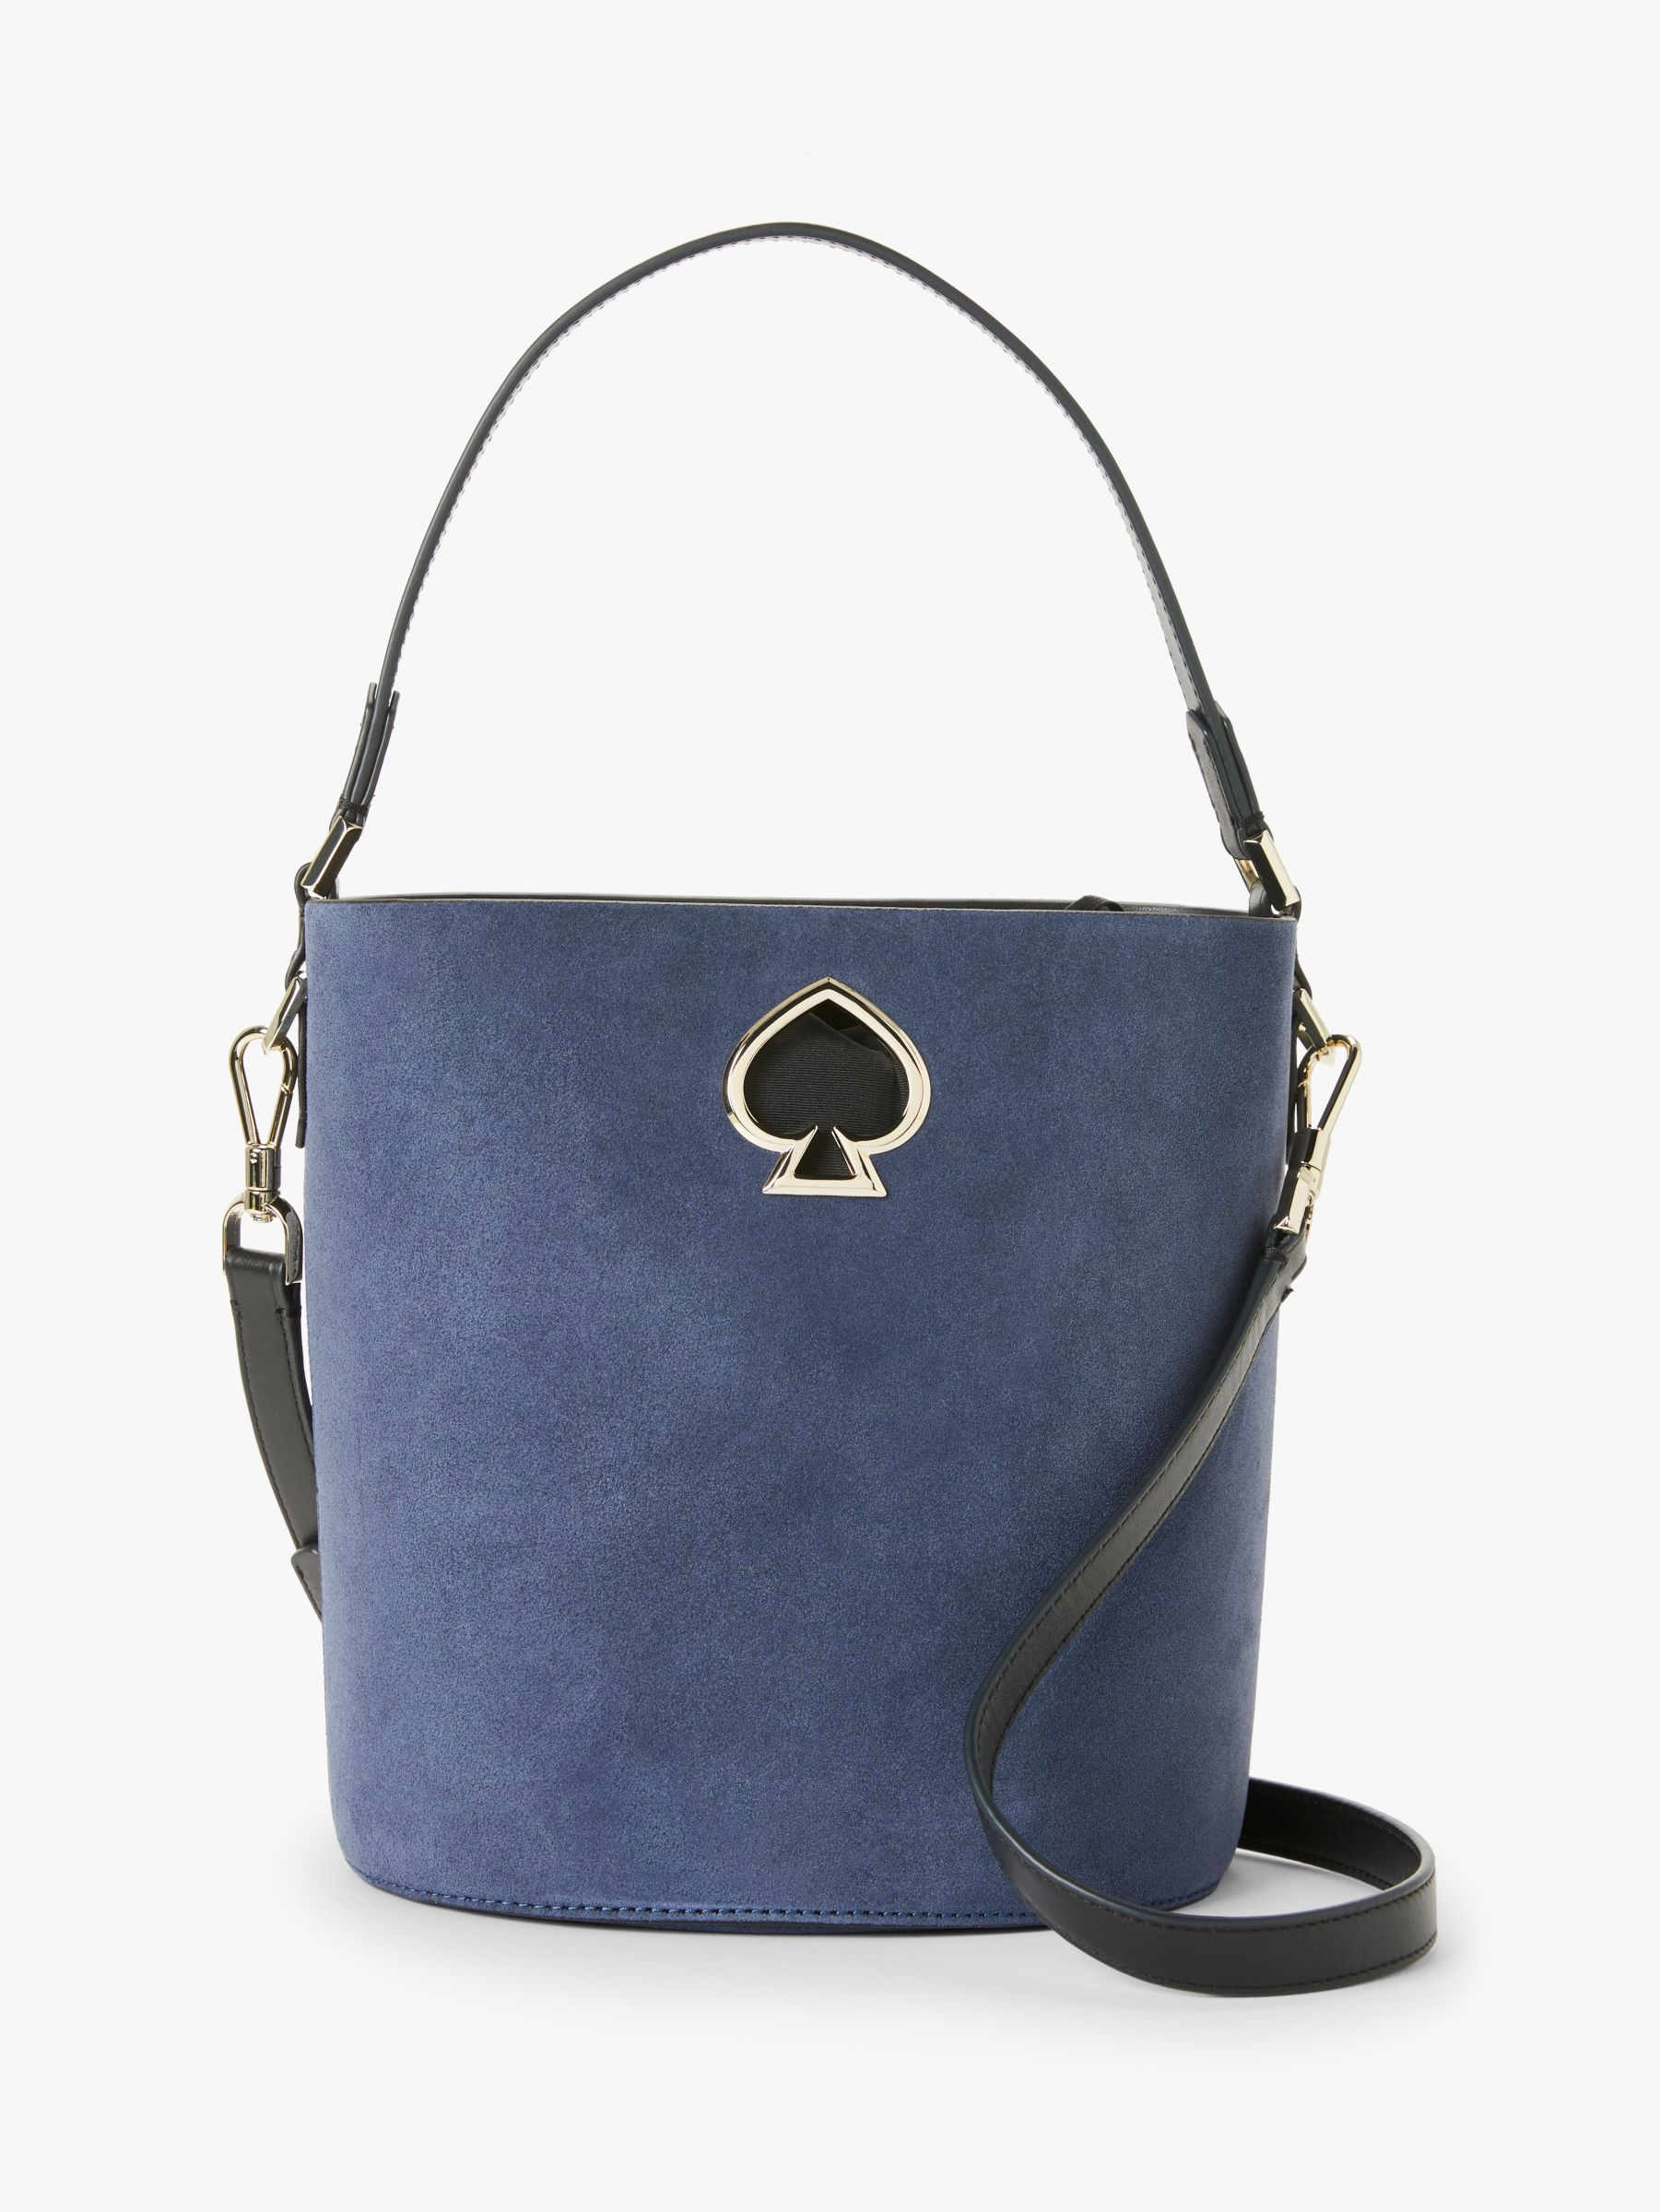 6dbada538f1d kate spade new york Suzy Suede Leather Bucket Bag at John Lewis & Partners